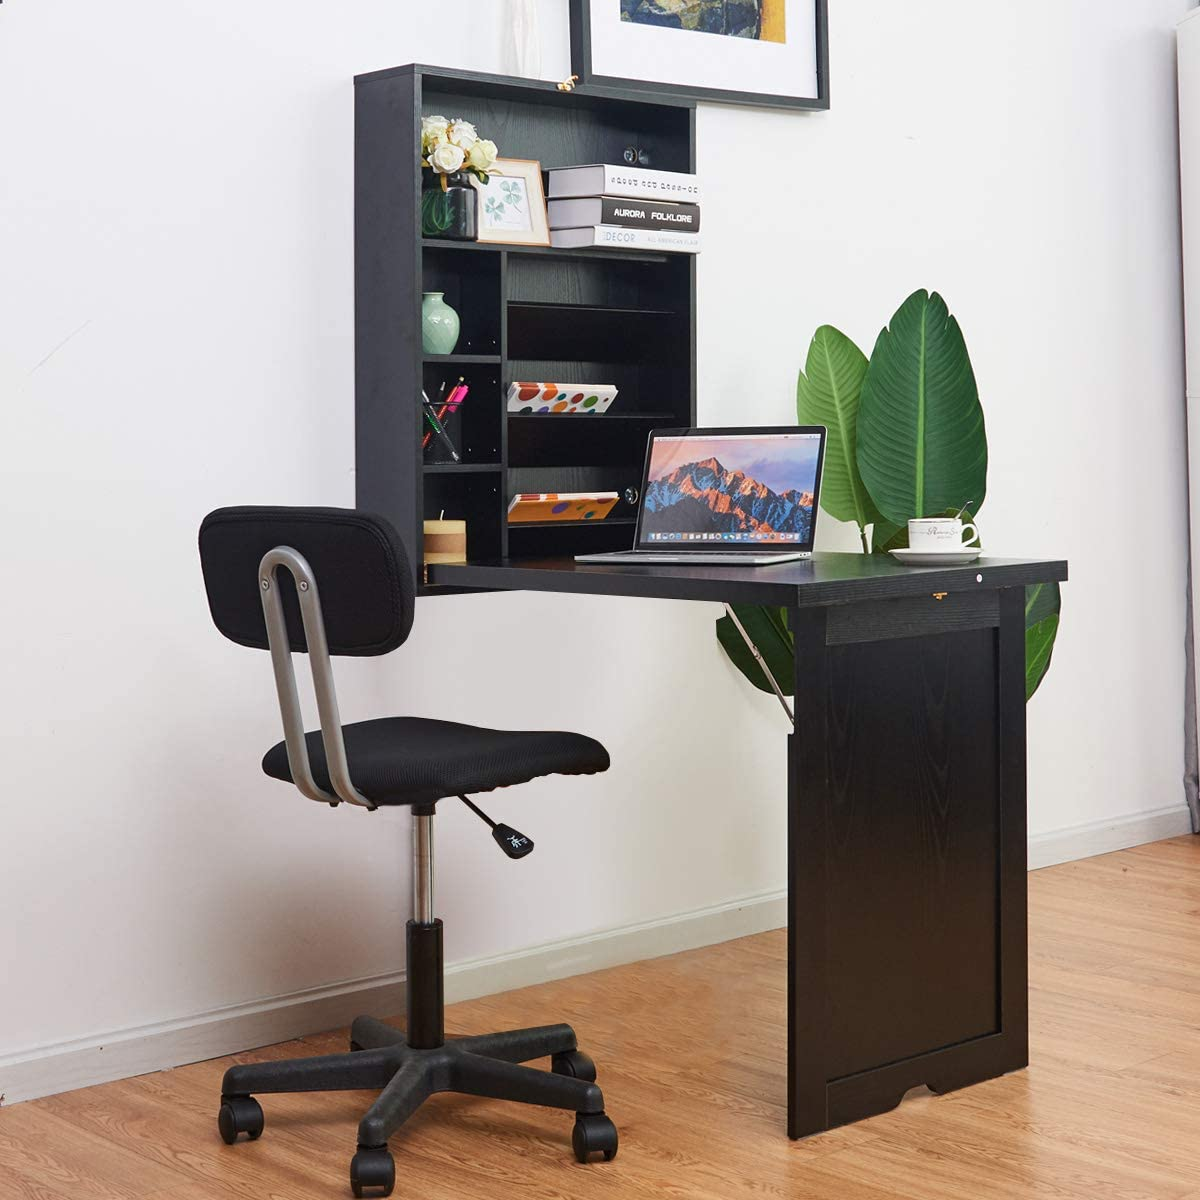 Best Work From Home Desks Convertible Workspace 2020